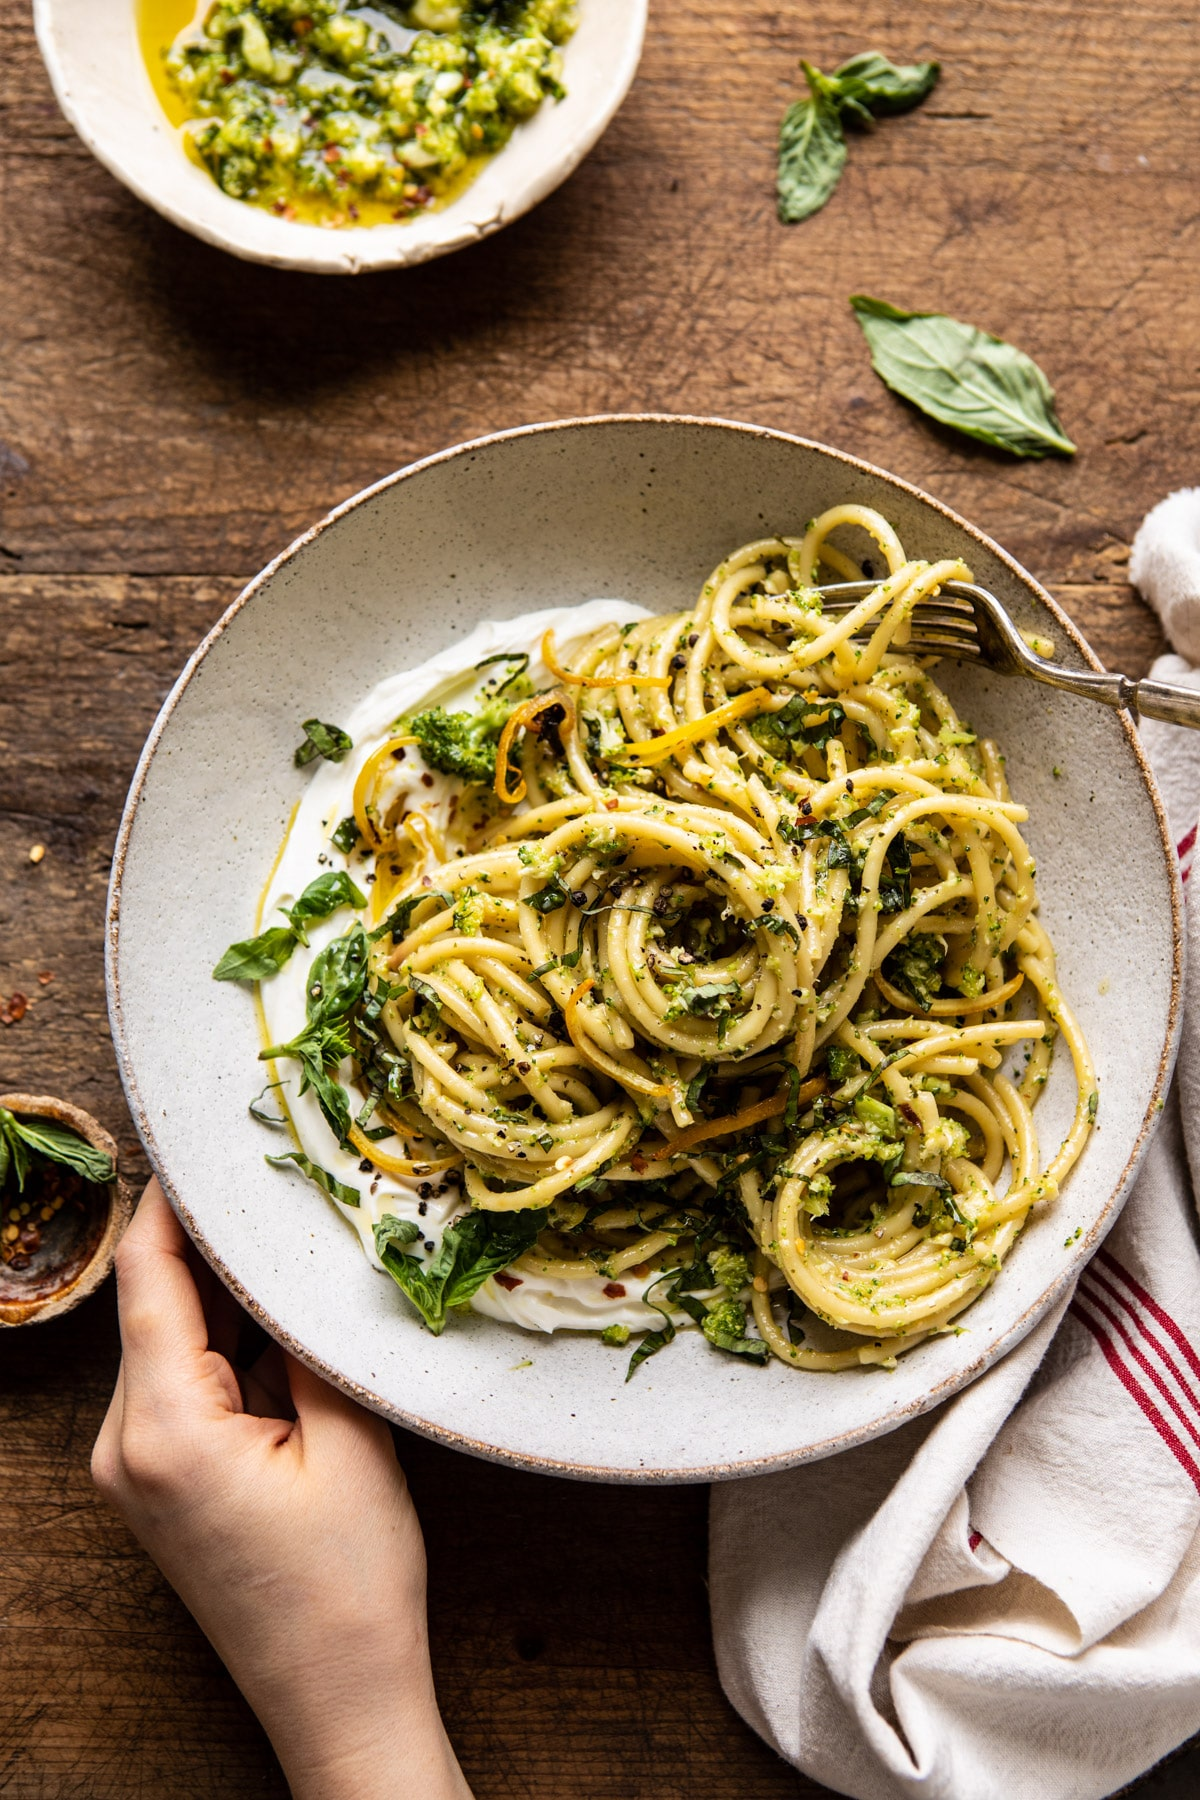 Lighter family dinner ideas for spring: Broccoli pesto pasta with whipped ricotta at Half Baked Harves